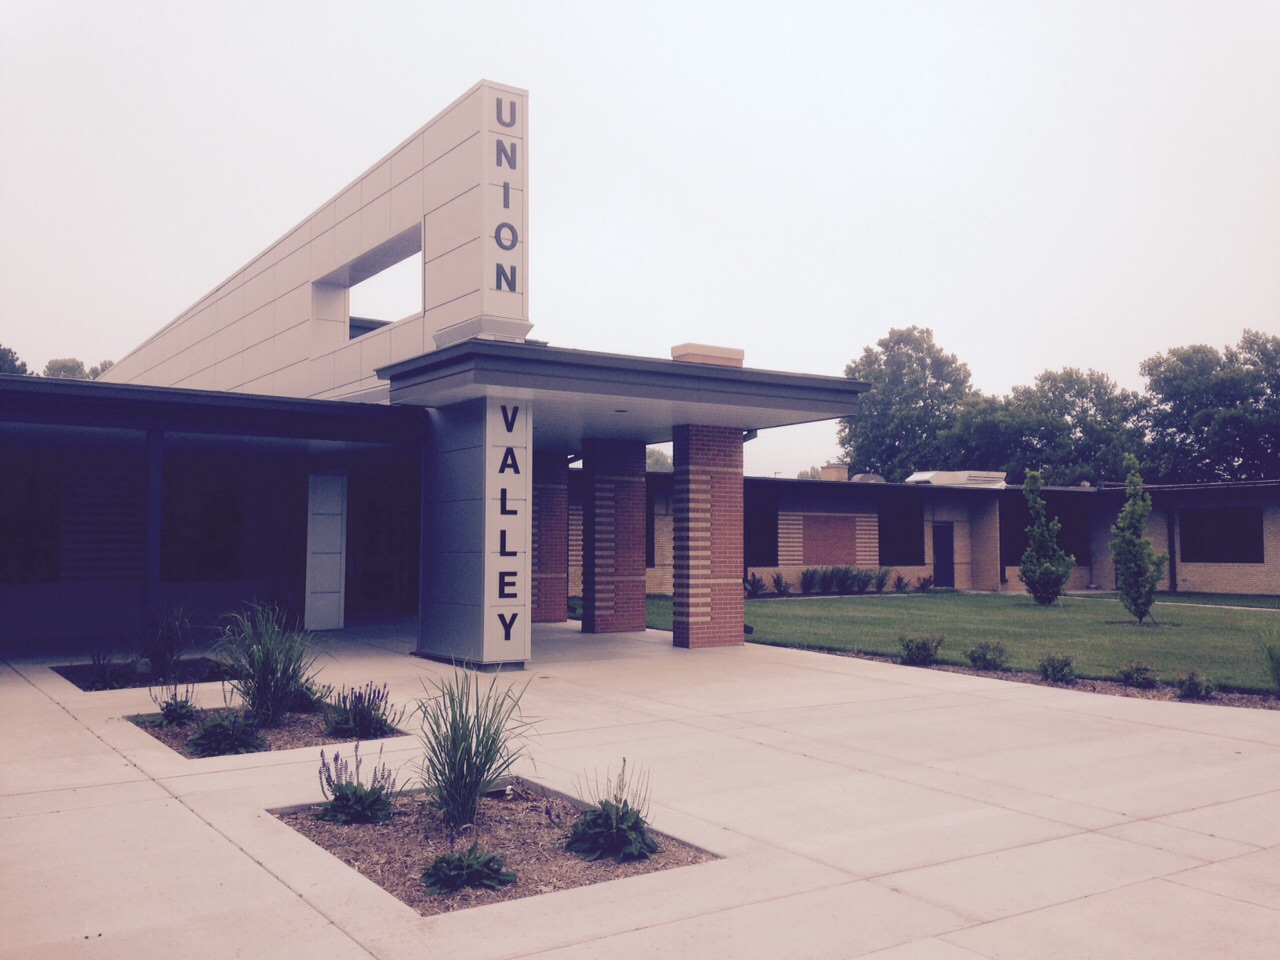 Photo of the outside of Union Valley Elementary